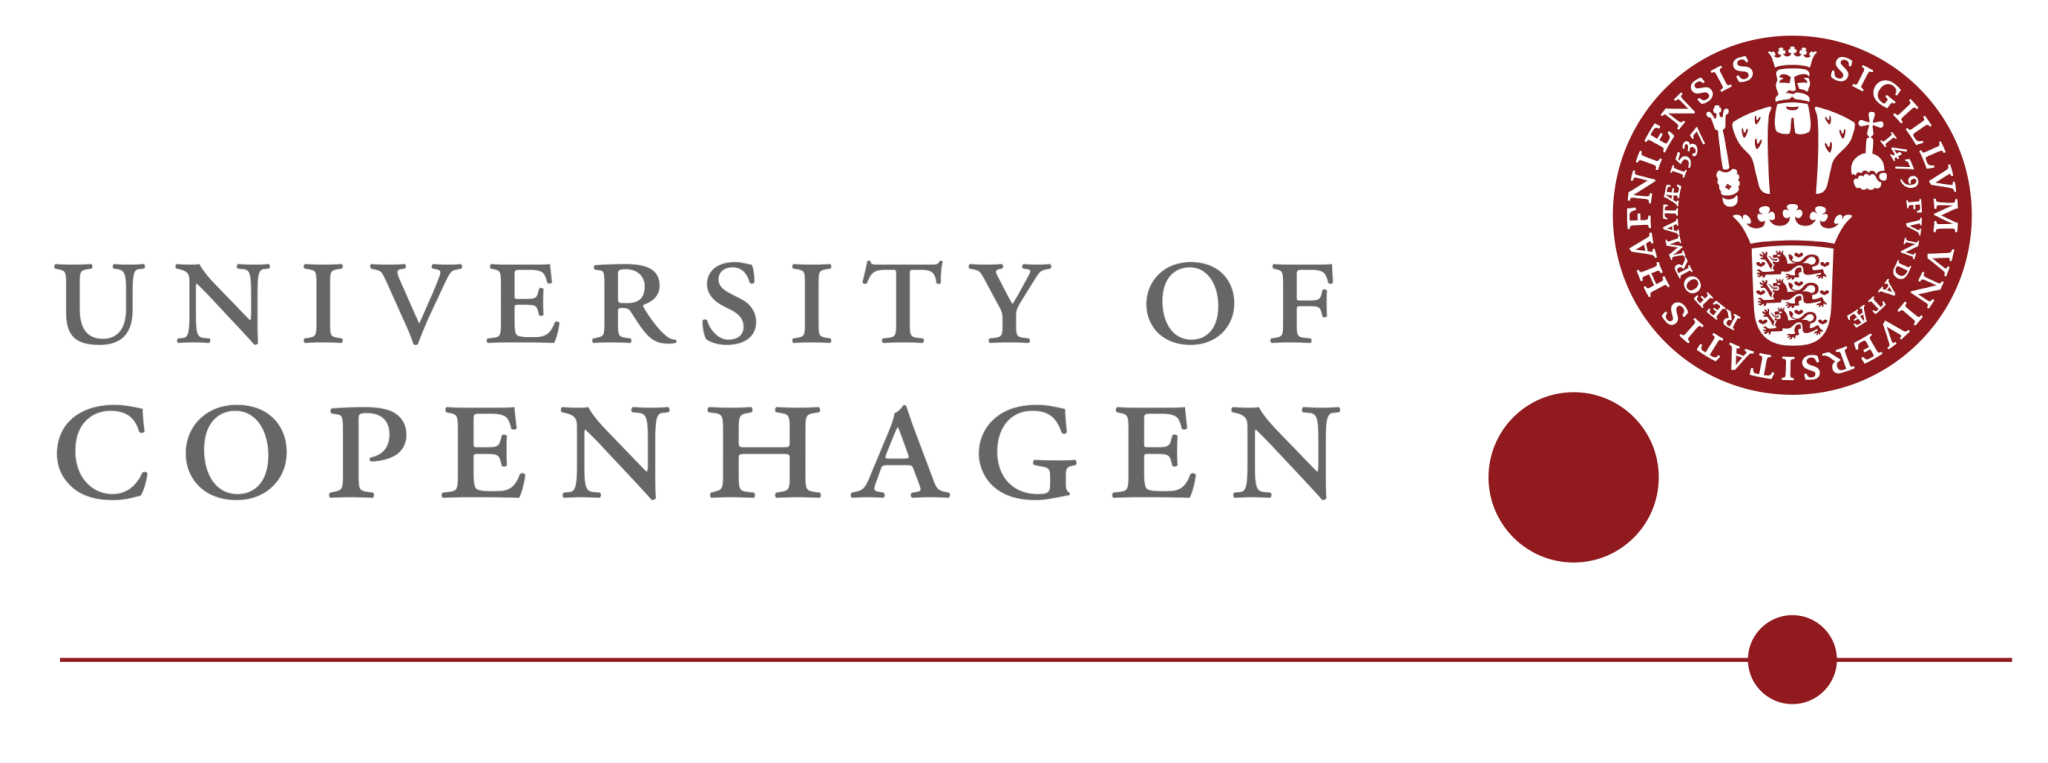 https://bentonfuturology.com/wp-content/uploads/2017/04/university-of-copenhagen.png